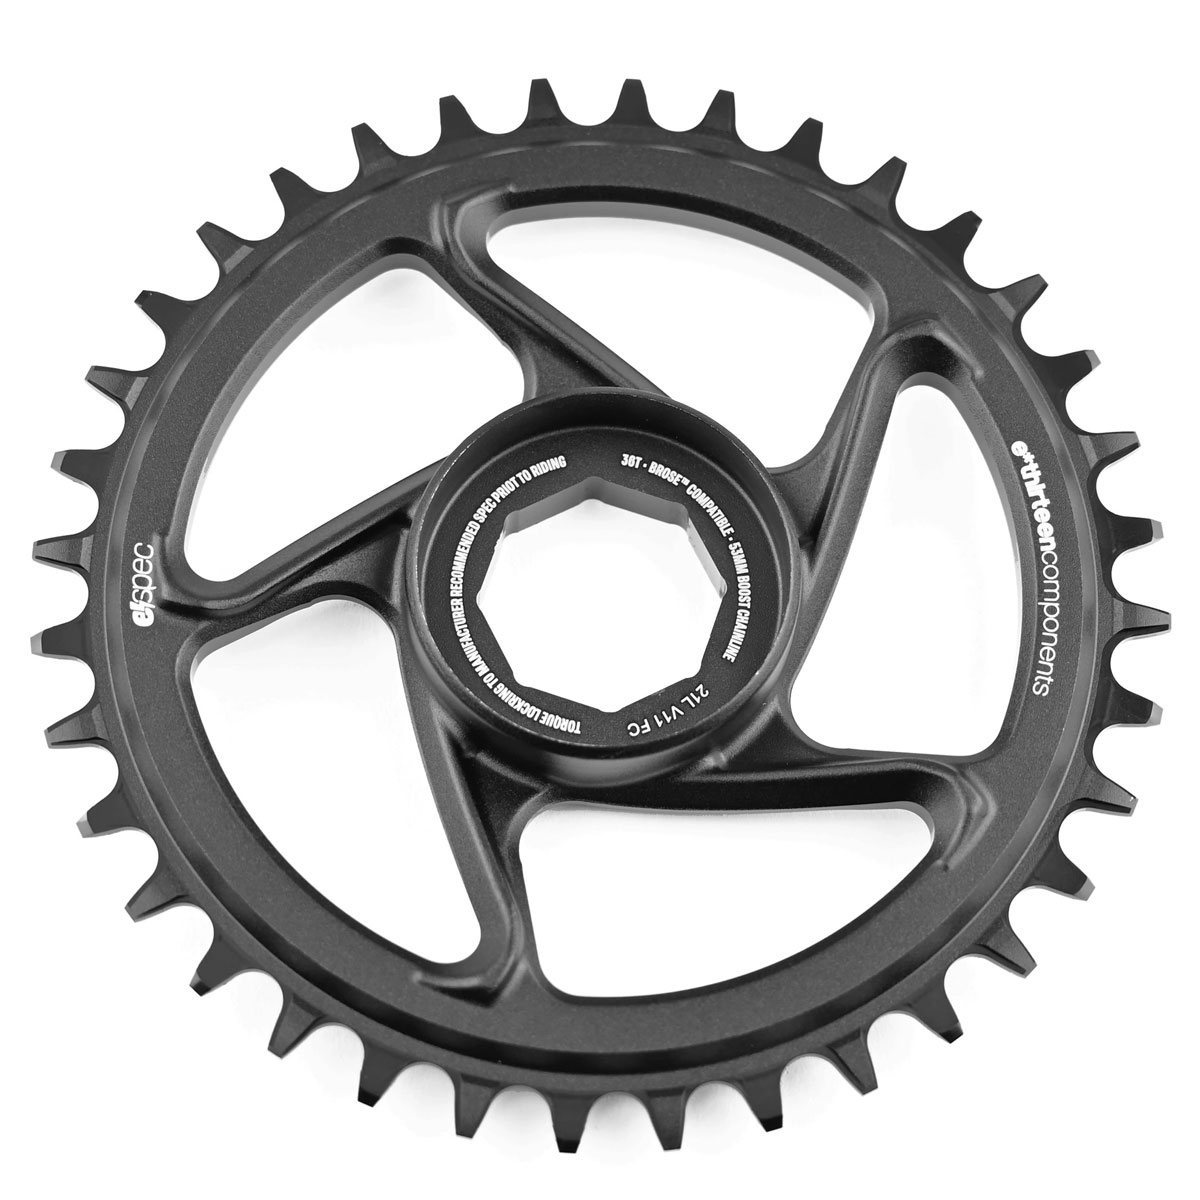 Picture of e*thirteen e*spec Direct Mount Chainring for Brose S Mag - black